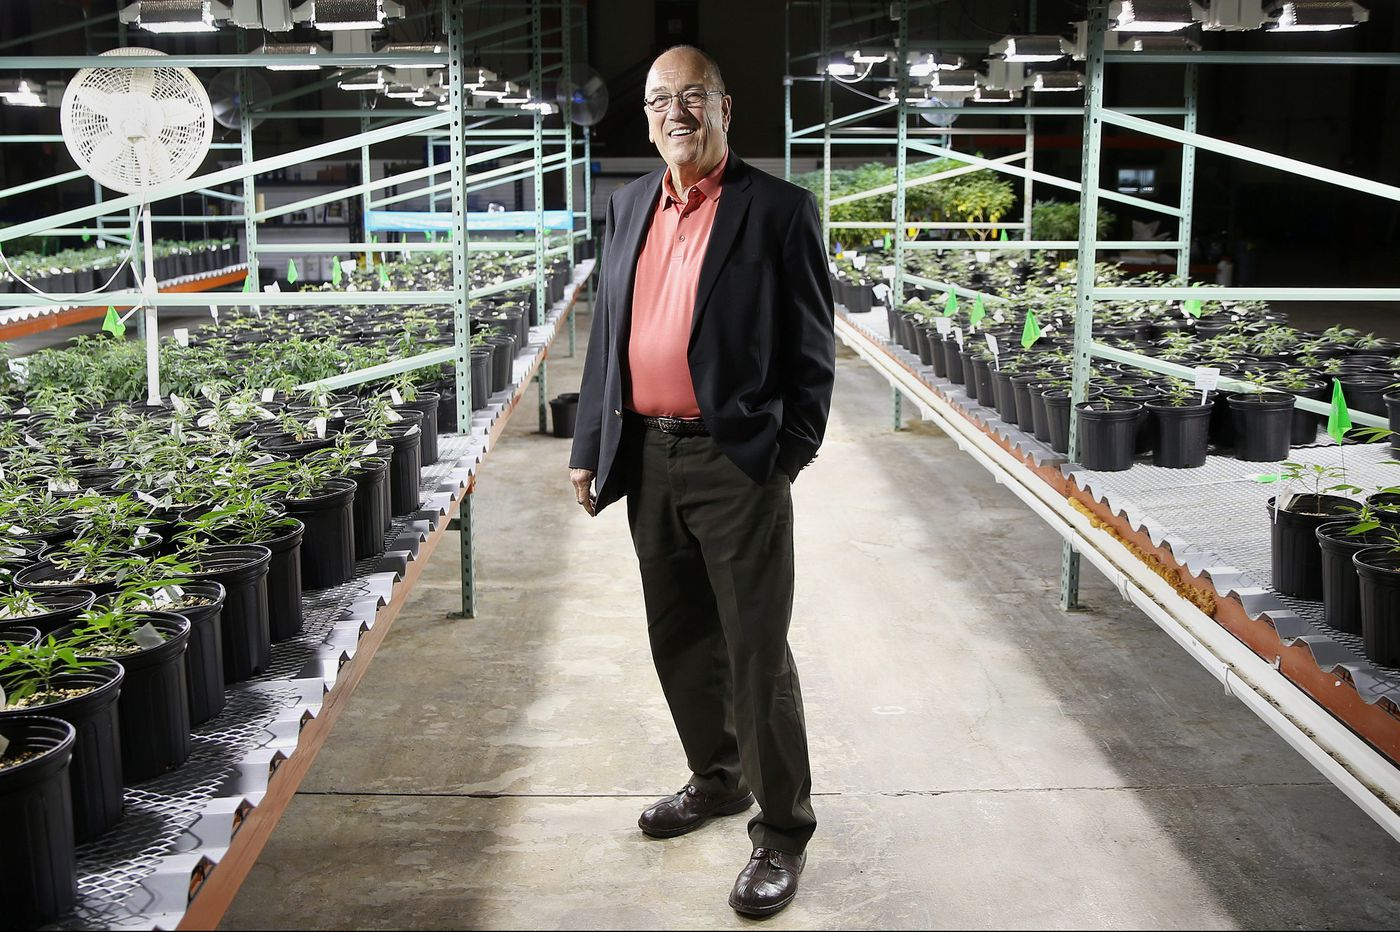 Medical marijuana dispensary expands in South Jersey, eyes new locations in Cherry Hill and Moorestown